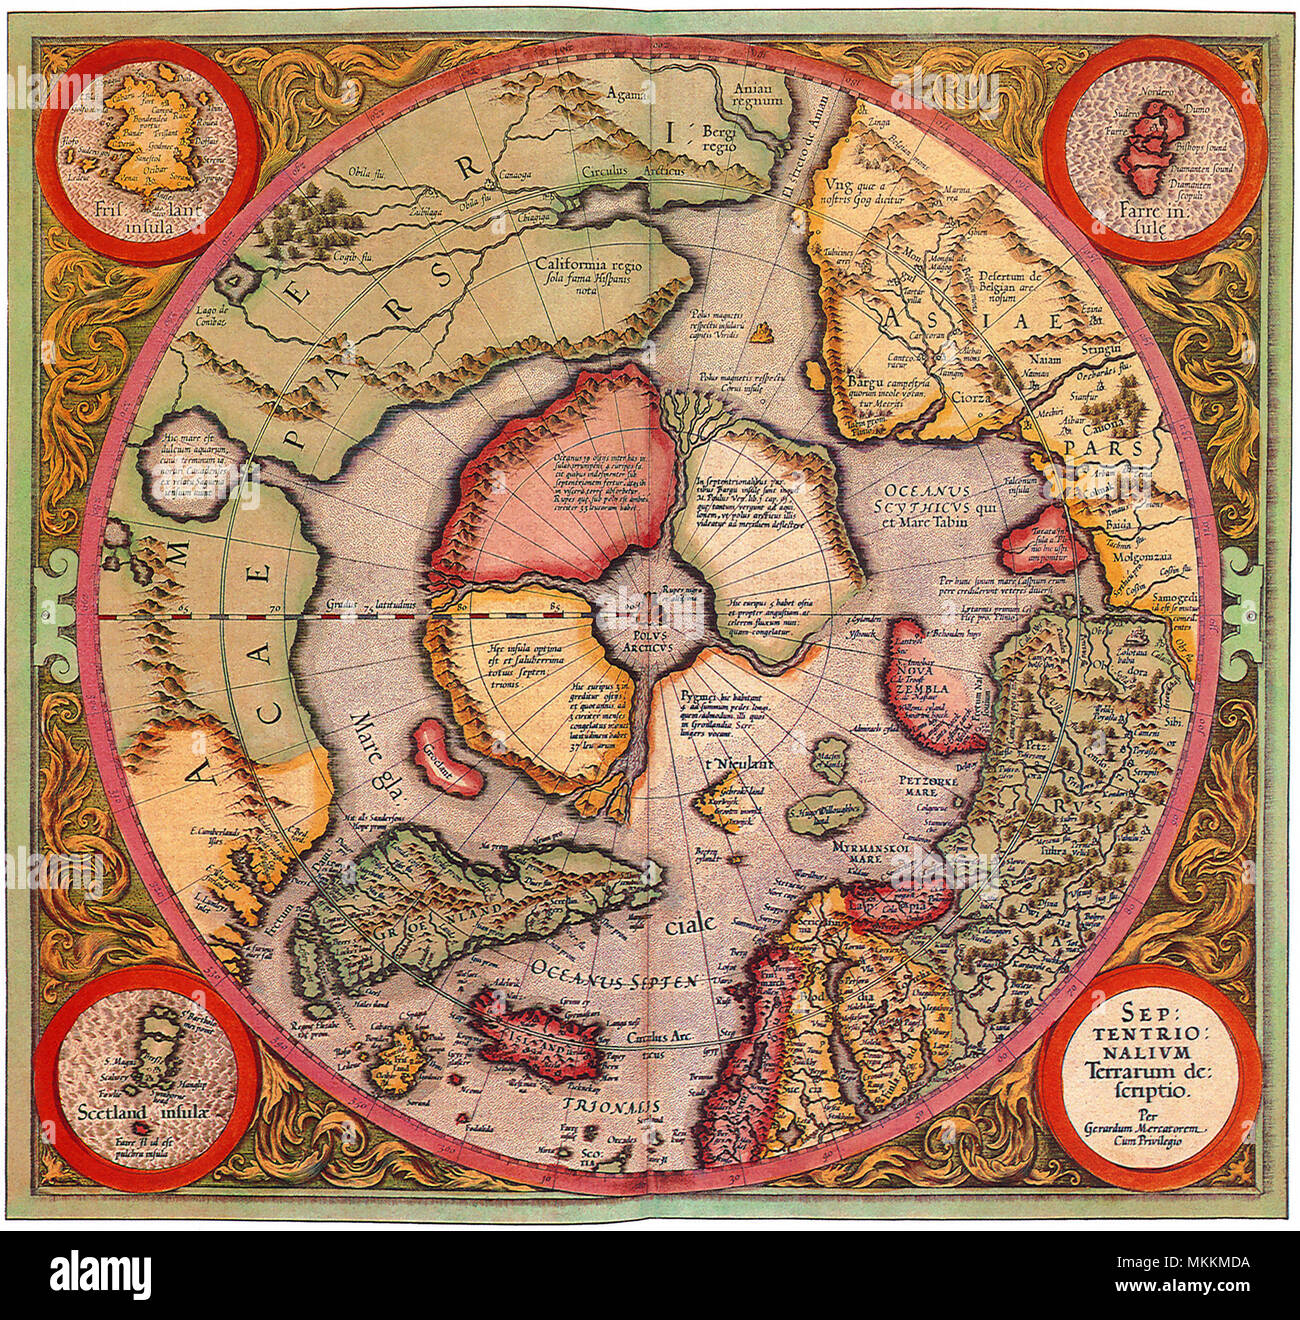 Old World Map 1595 Stock Photo: 184215286 - Alamy on old map sea monsters, old world maps framed, ancient beasts and monsters, antique nautical monsters, maps with sea monsters, see monsters, old world maps with mermaids, nice silly sea monsters, old maps of the world, map of us monsters, old world map with countries, here there be monsters, old world maps murals, old world explorer maps, old world maps printable, old japanese monsters, ancient sea monsters, vintage maritime sea monsters, old nautical maps,